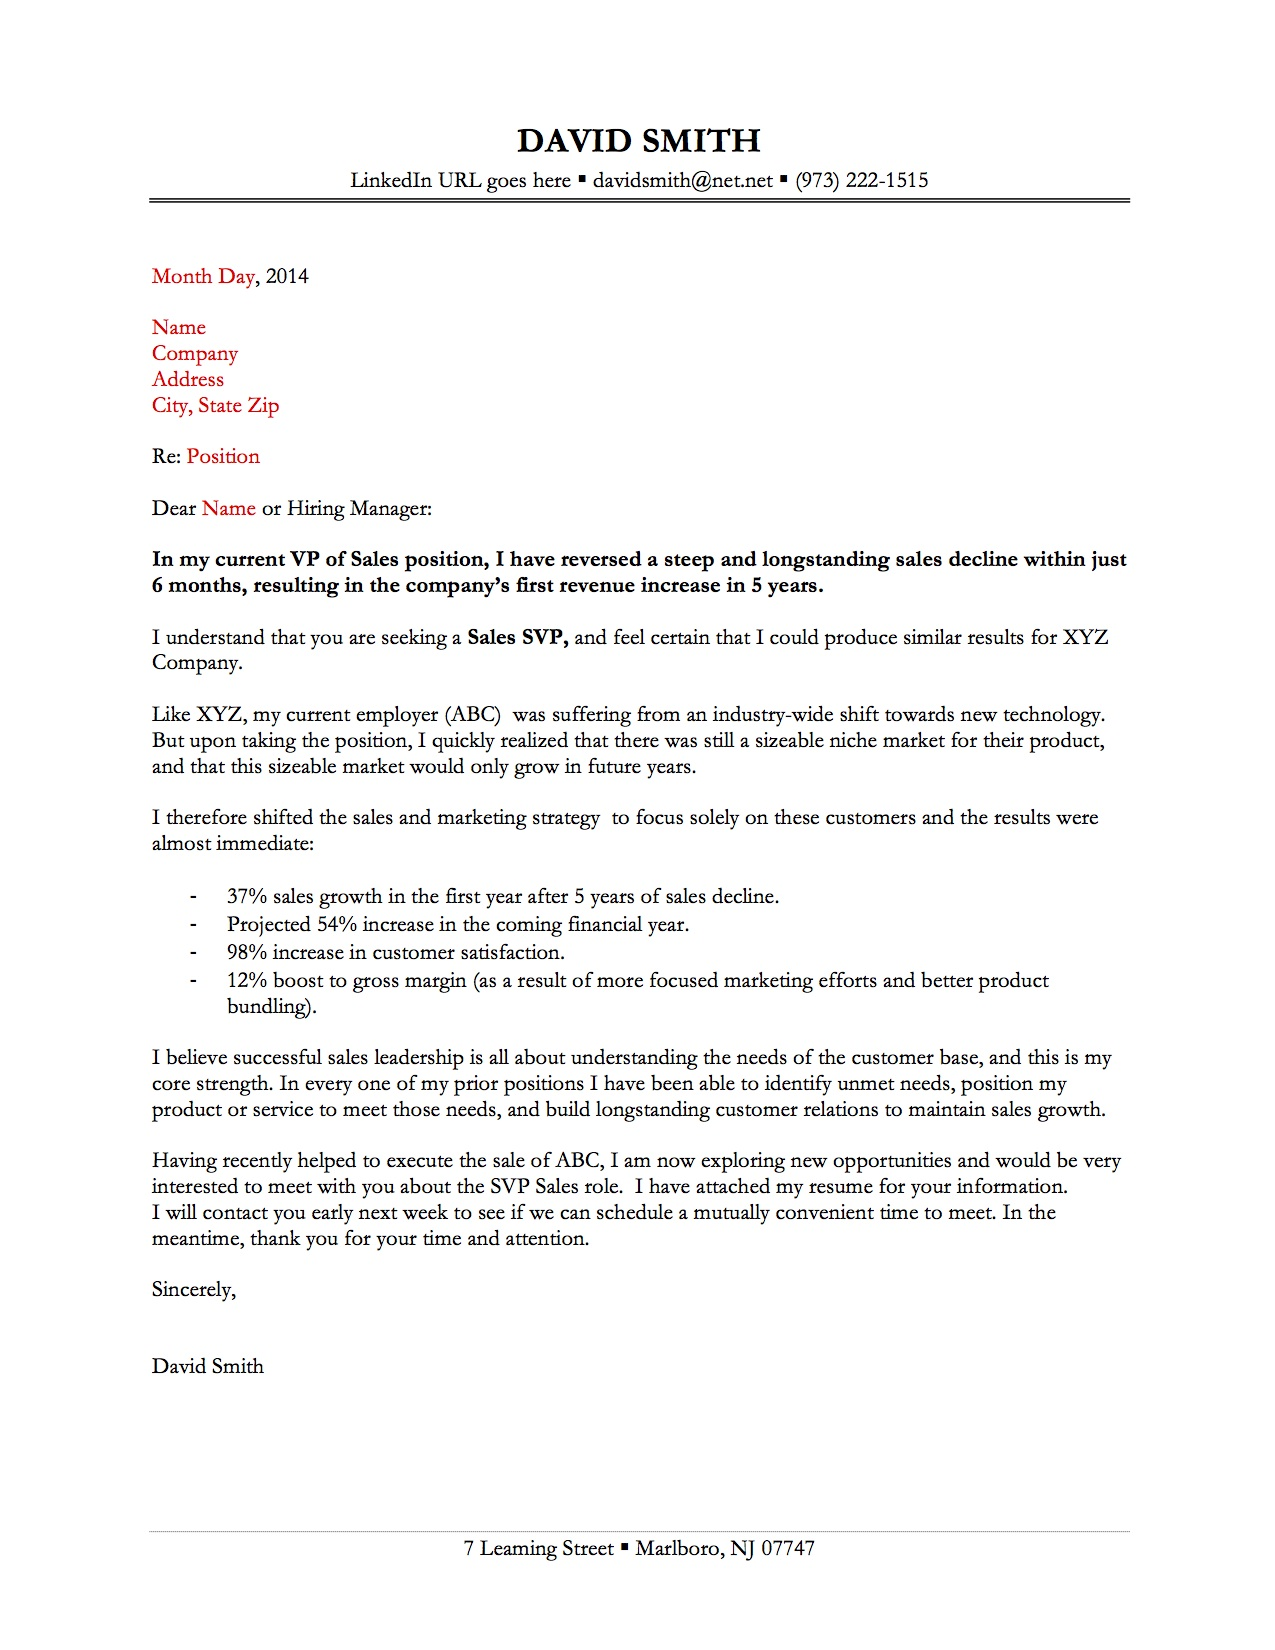 Targeted Cover Letter Two Great Cover Letter Examples Blog Blue Sky Resumes